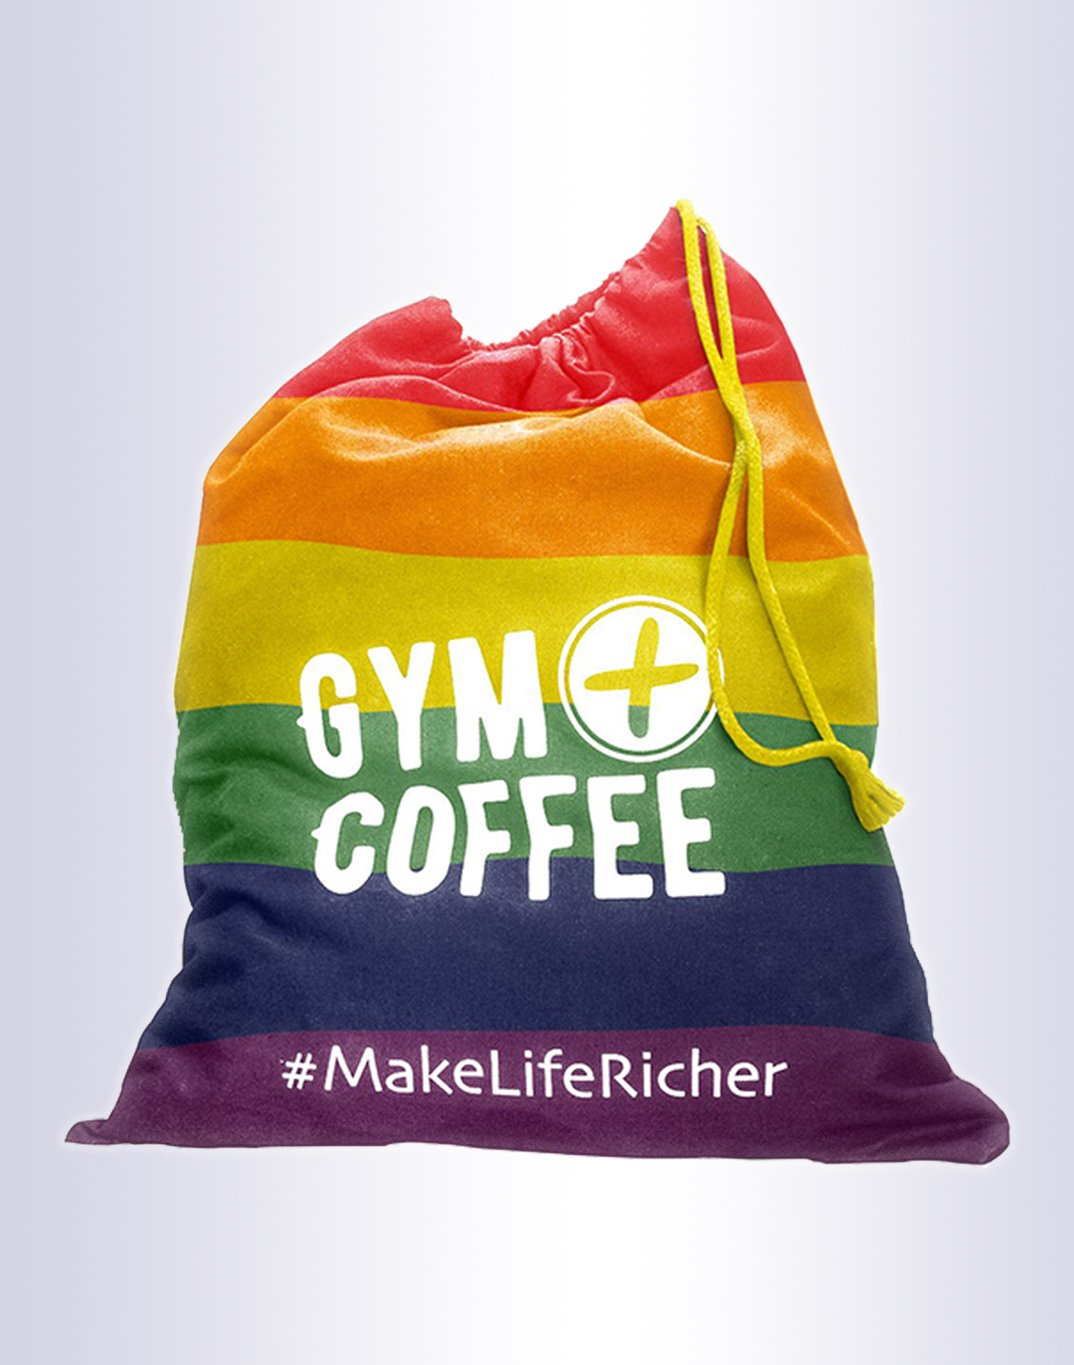 Gym Plus Coffee Bag Pride Totes Ma Goats Designed in Ireland